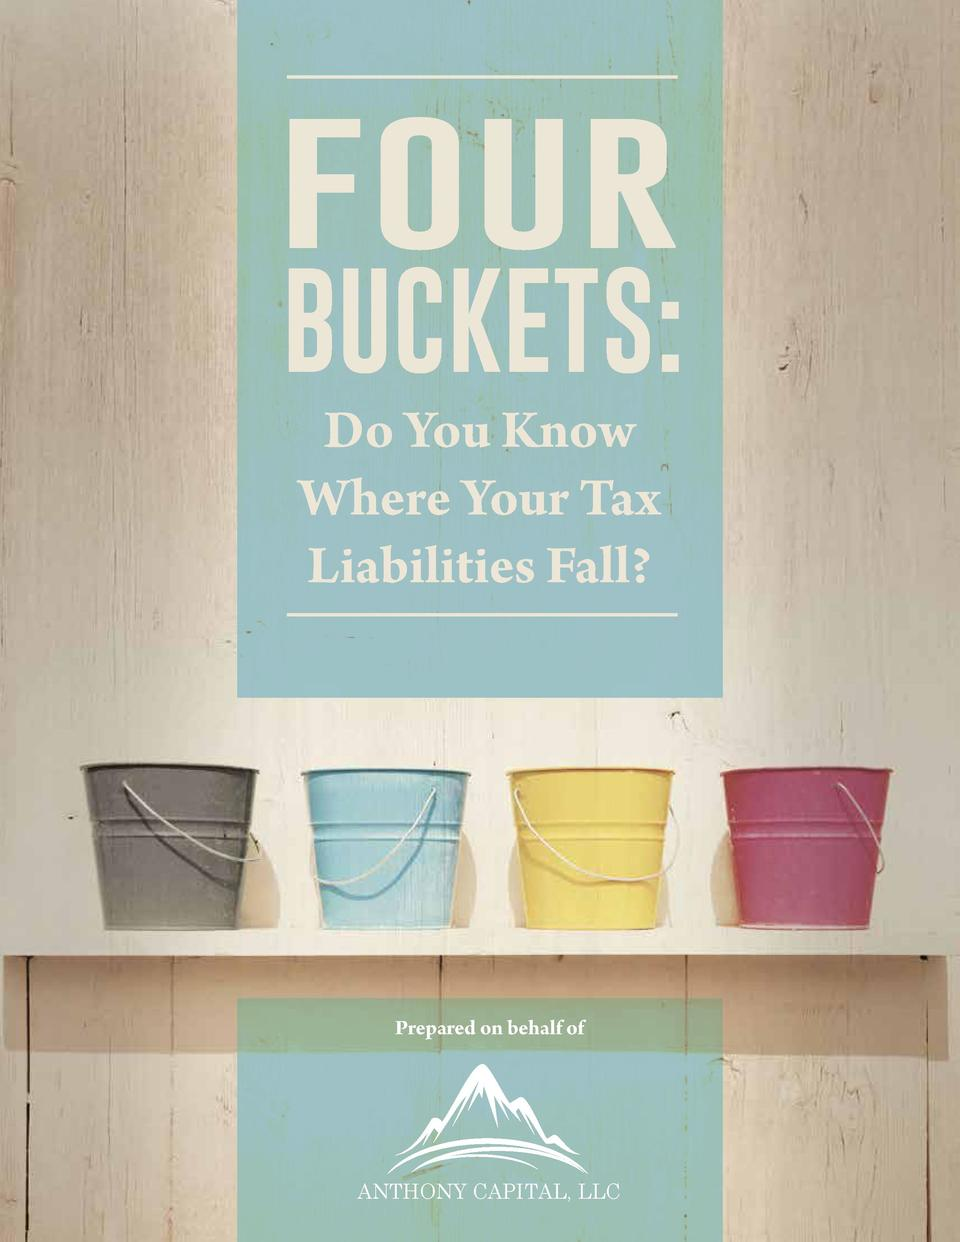 FOUR  BUCKETS  Do You Know Where Your Tax Liabilities Fall   Prepared on behalf of  ANTHONY CAPITAL, LLC